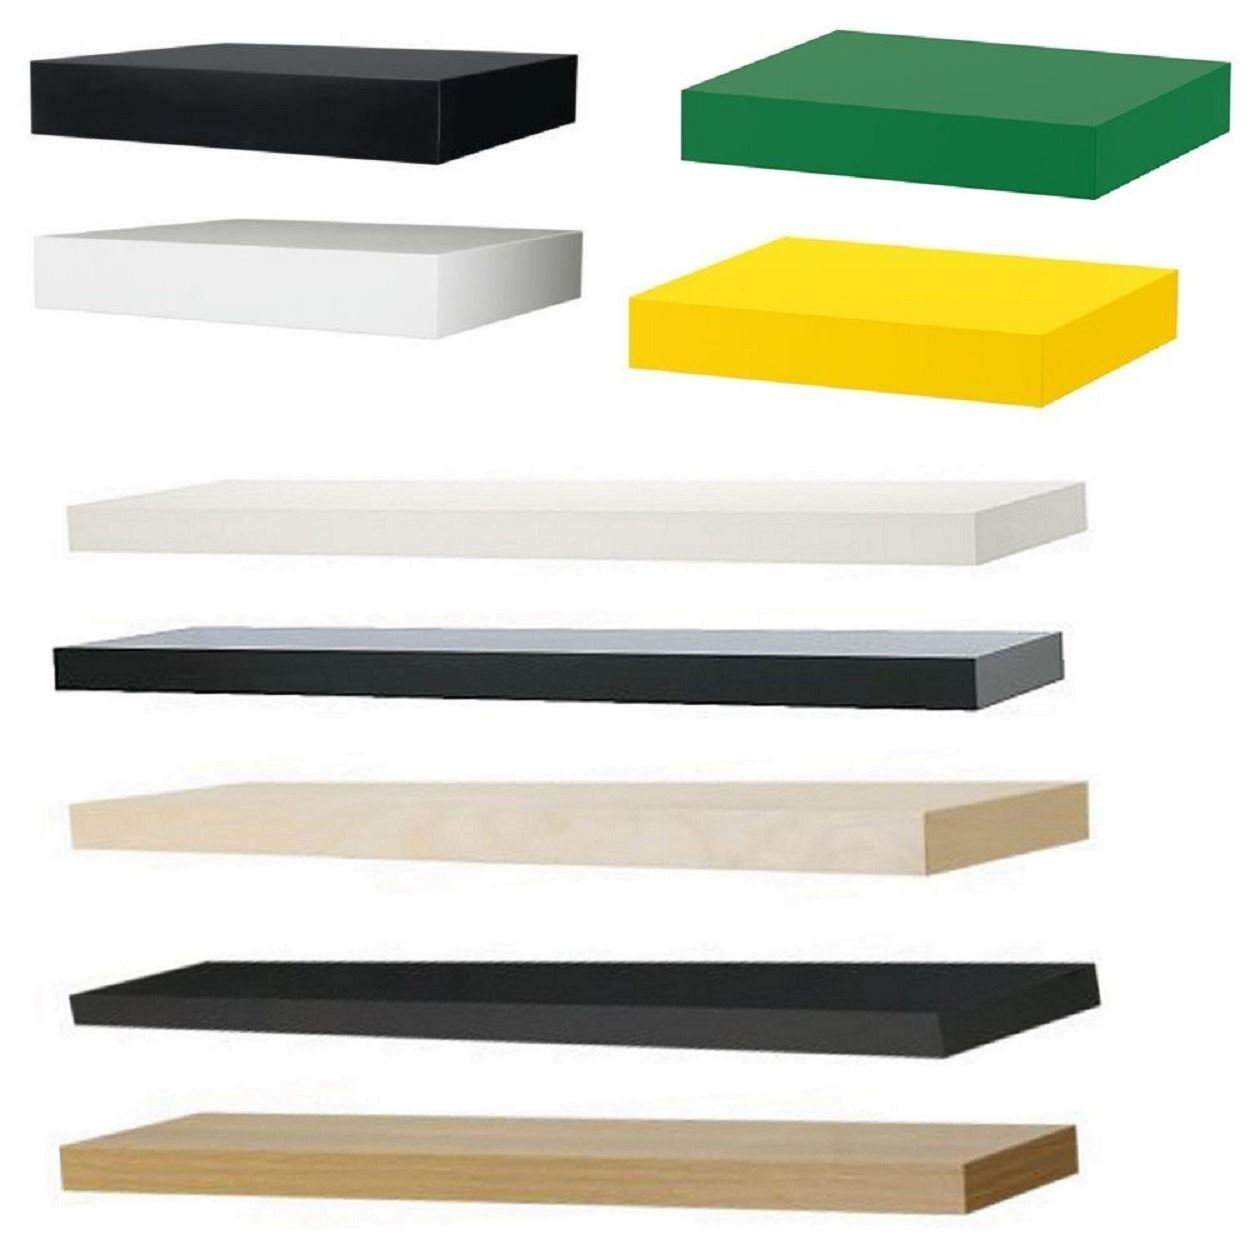 Ikea Lack Floating Wall Shelf Display Concealed Mounting